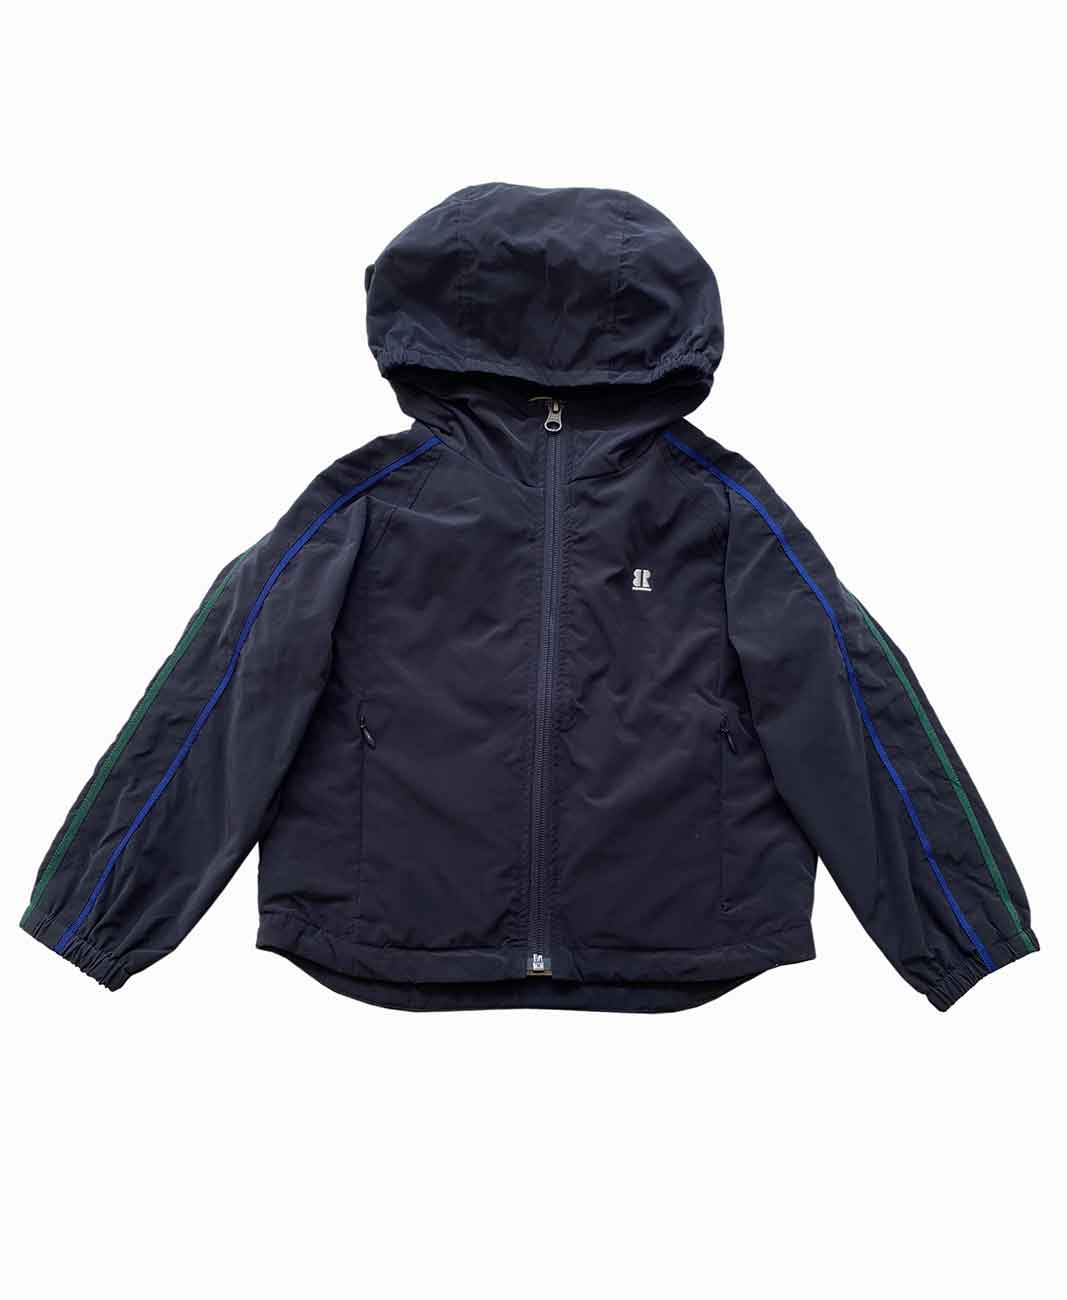 Heni Windbreaker Jacket